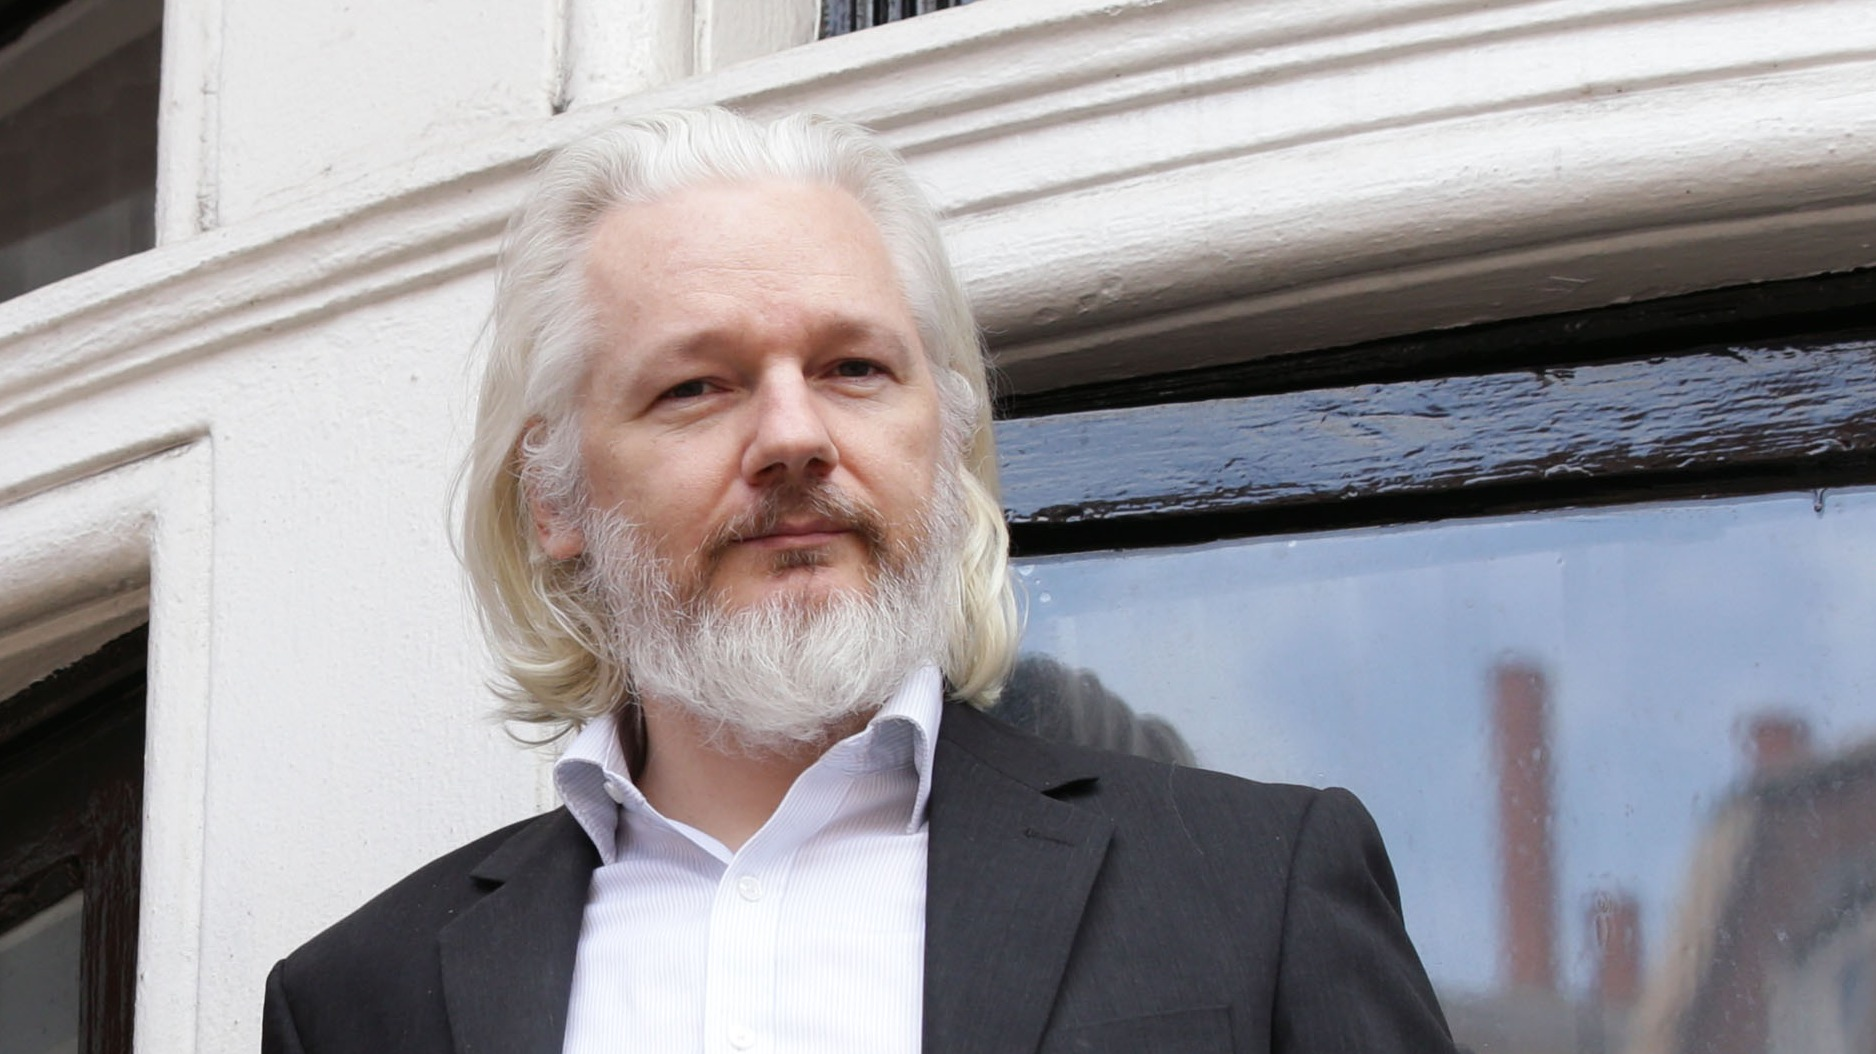 Julian Assange To Be Questioned At Ecuadorian Embassy Over